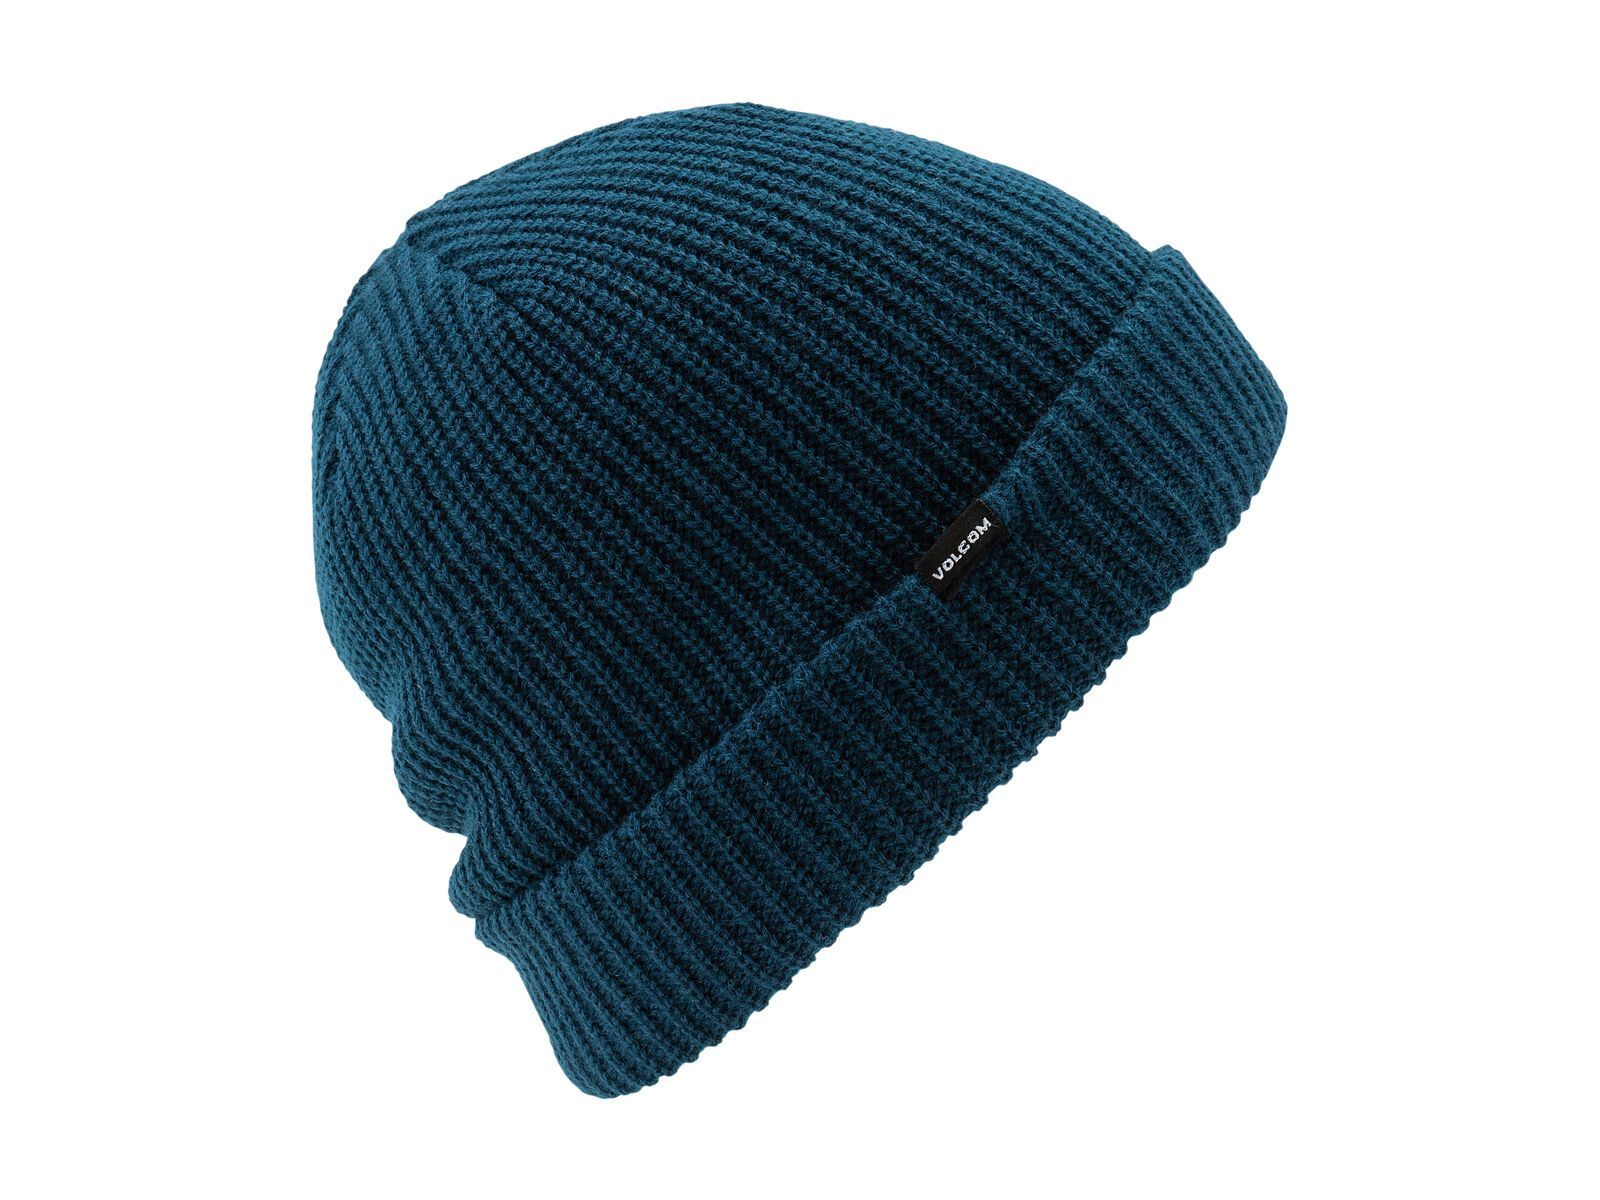 Volcom Sweep Beanie, blue - Mütze J5852101-BLU-One Size